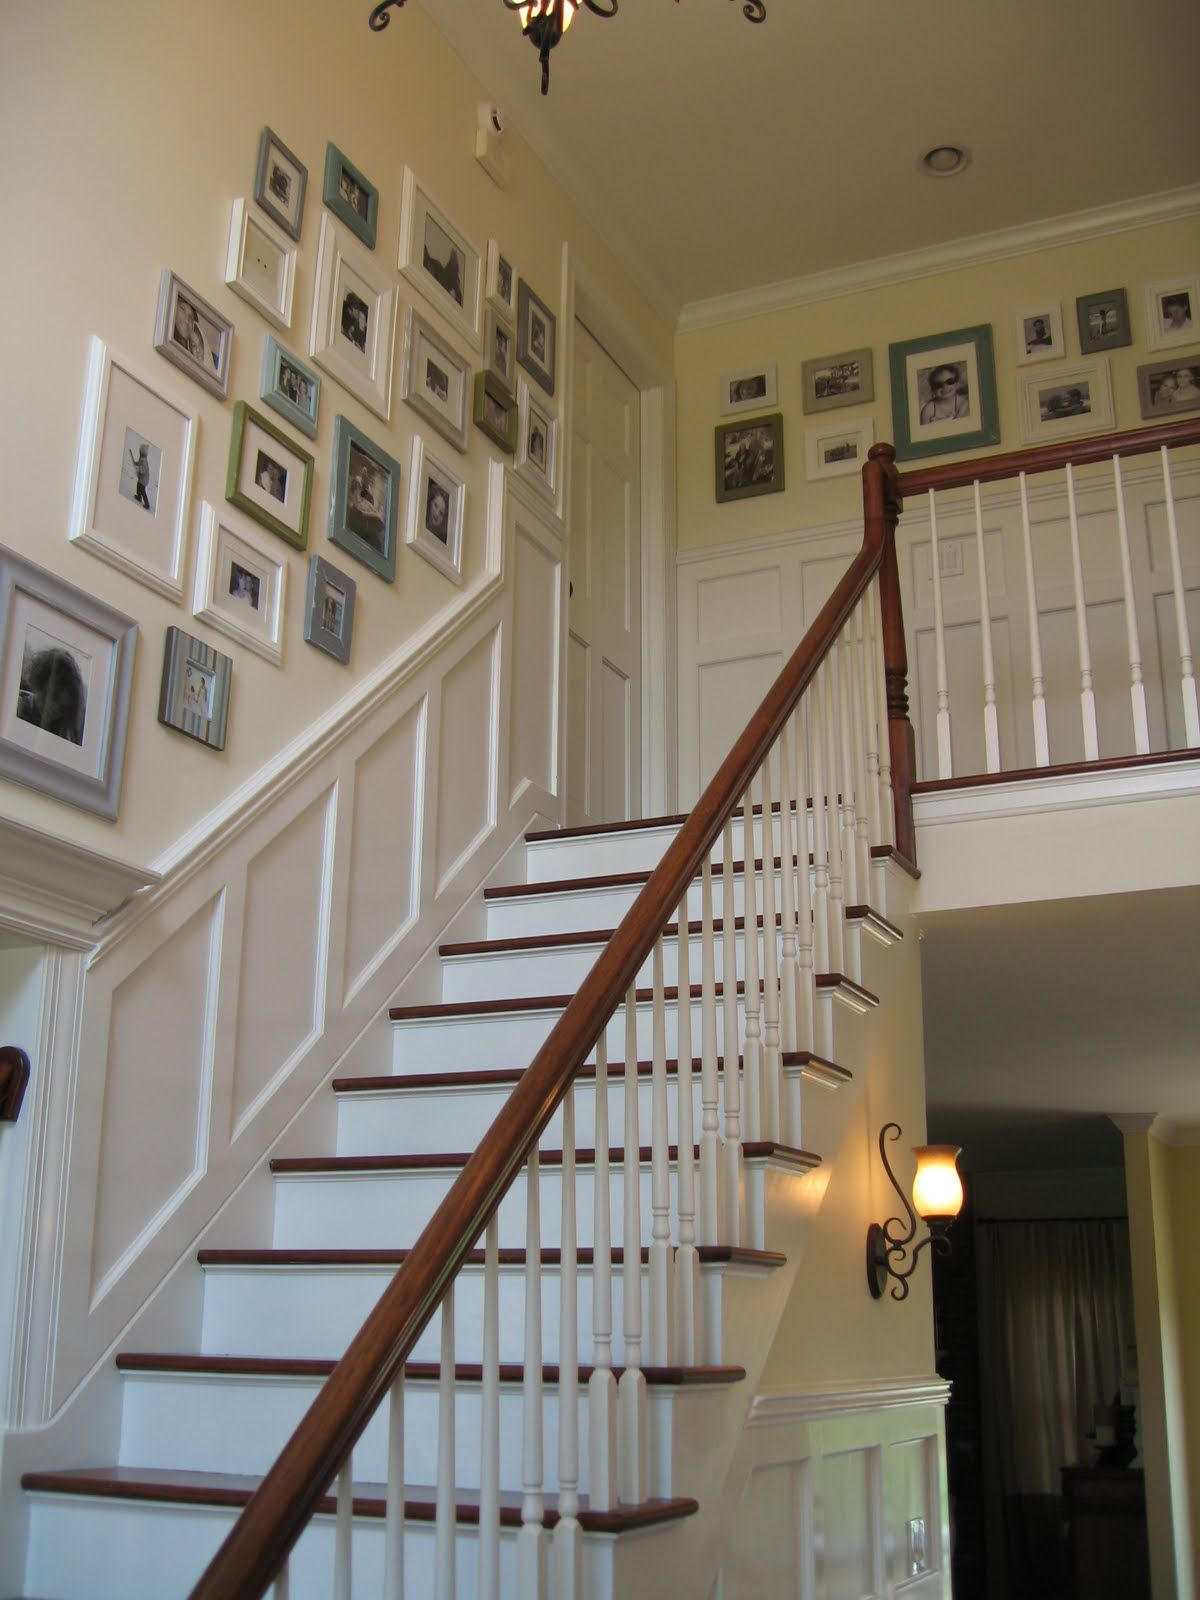 Ooh I have a large stair wall Thinking thinking